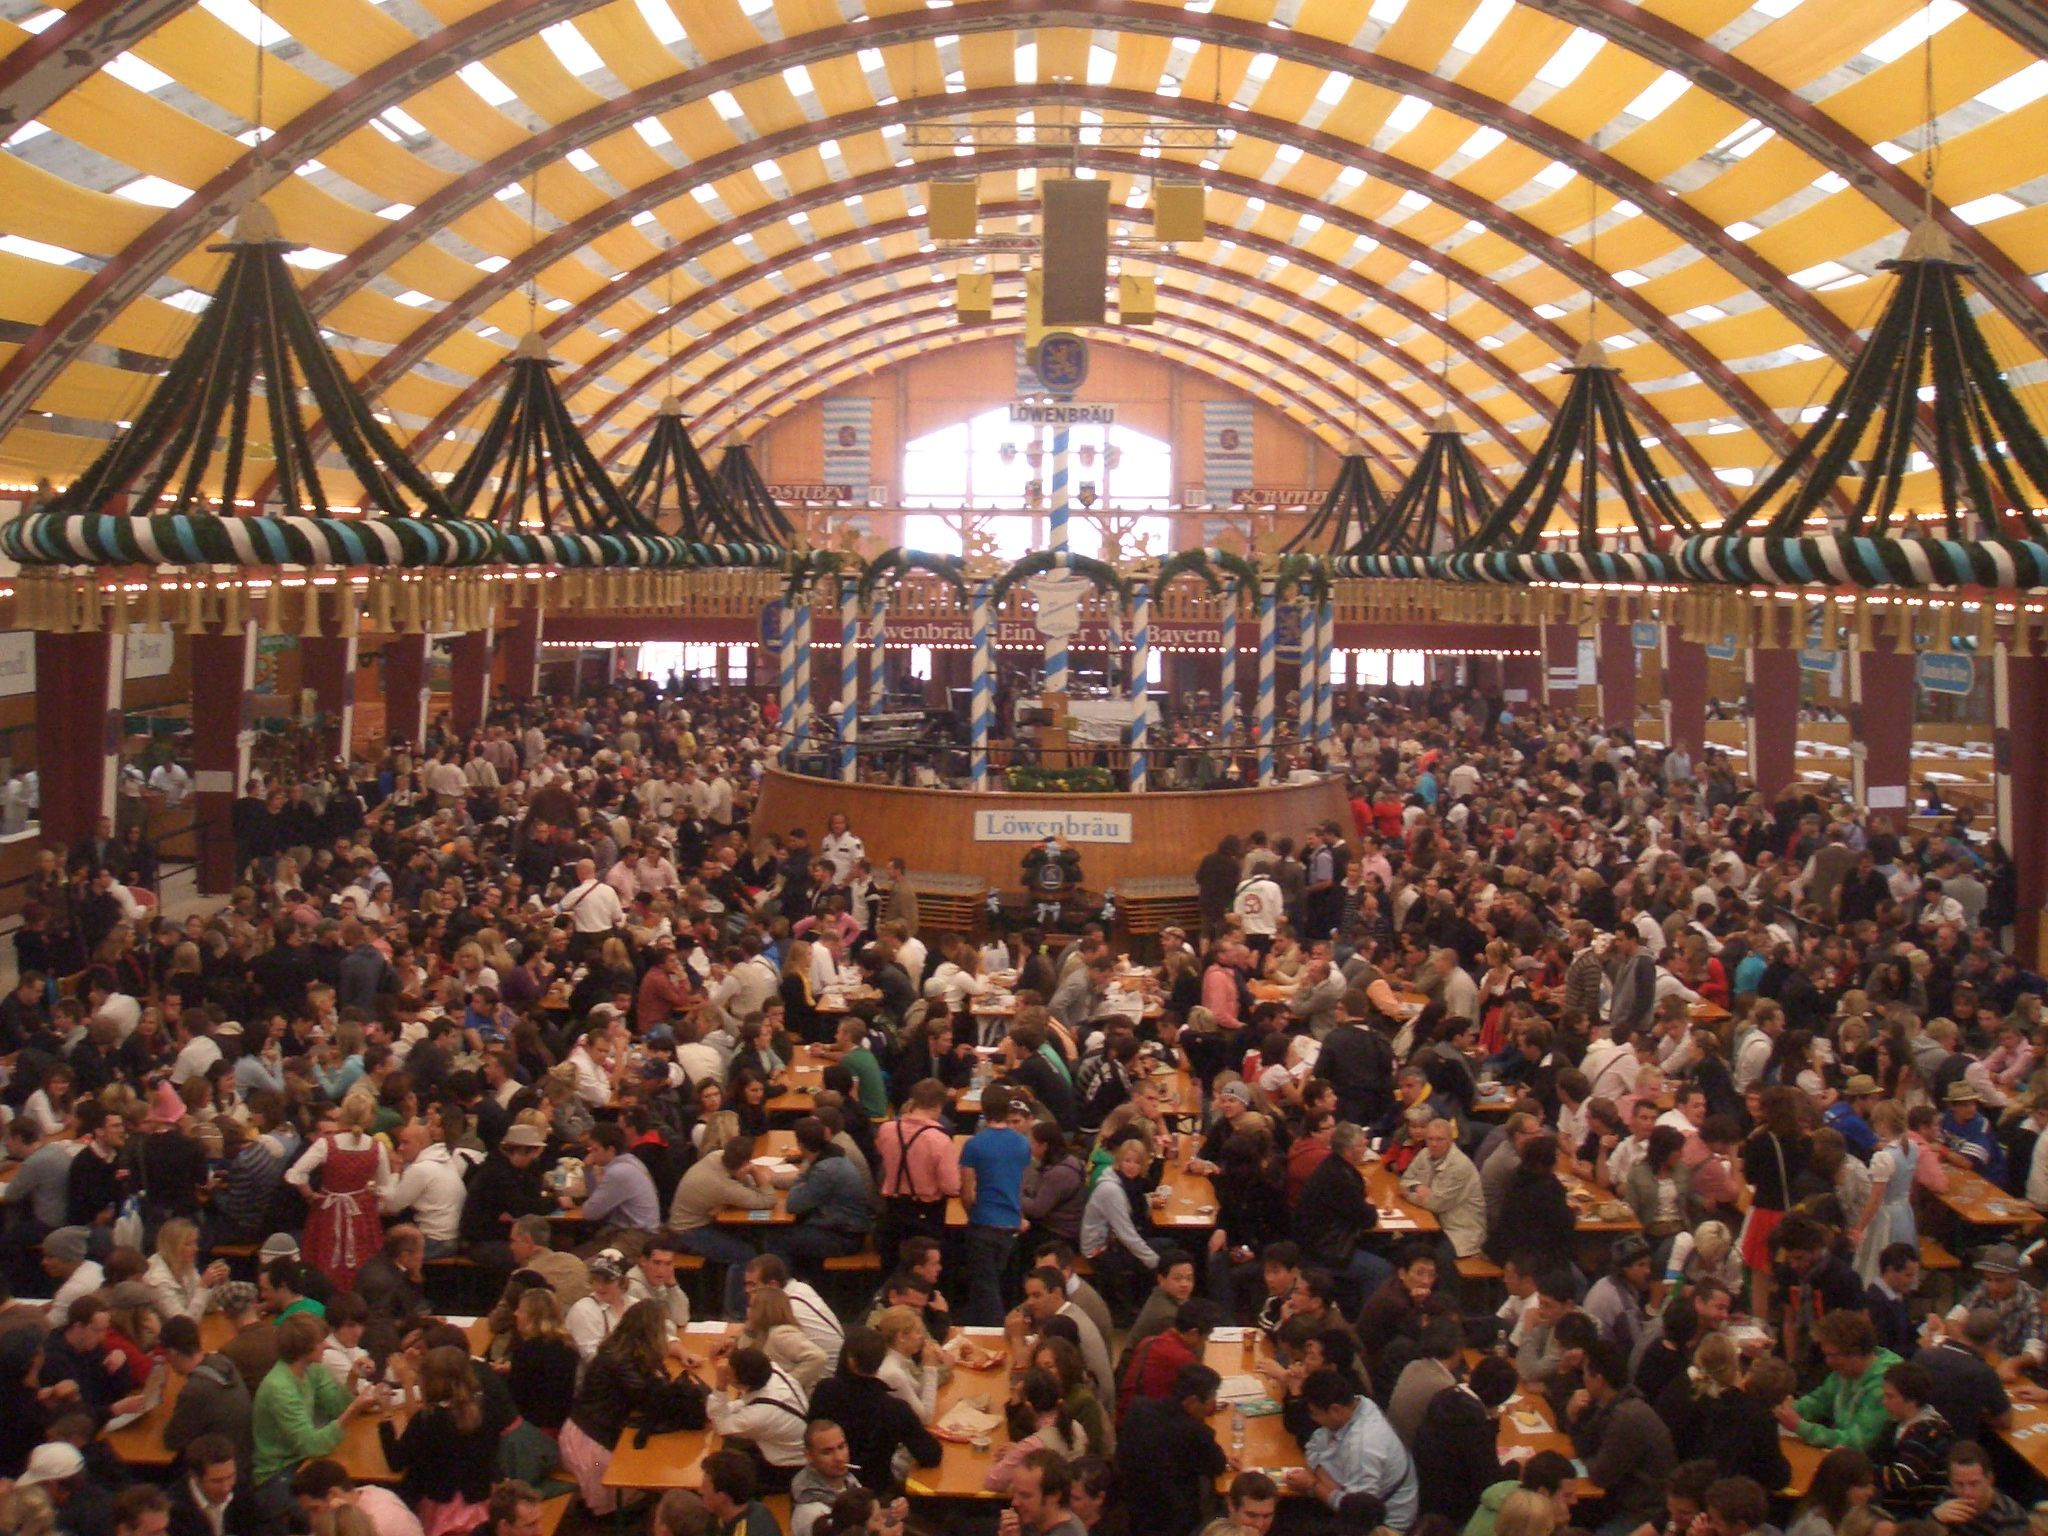 Best oktoberfests top oktoberfest events - US - Canada - world & A Beginners Guide to Oktoberfest | European Vacation 2015 ...